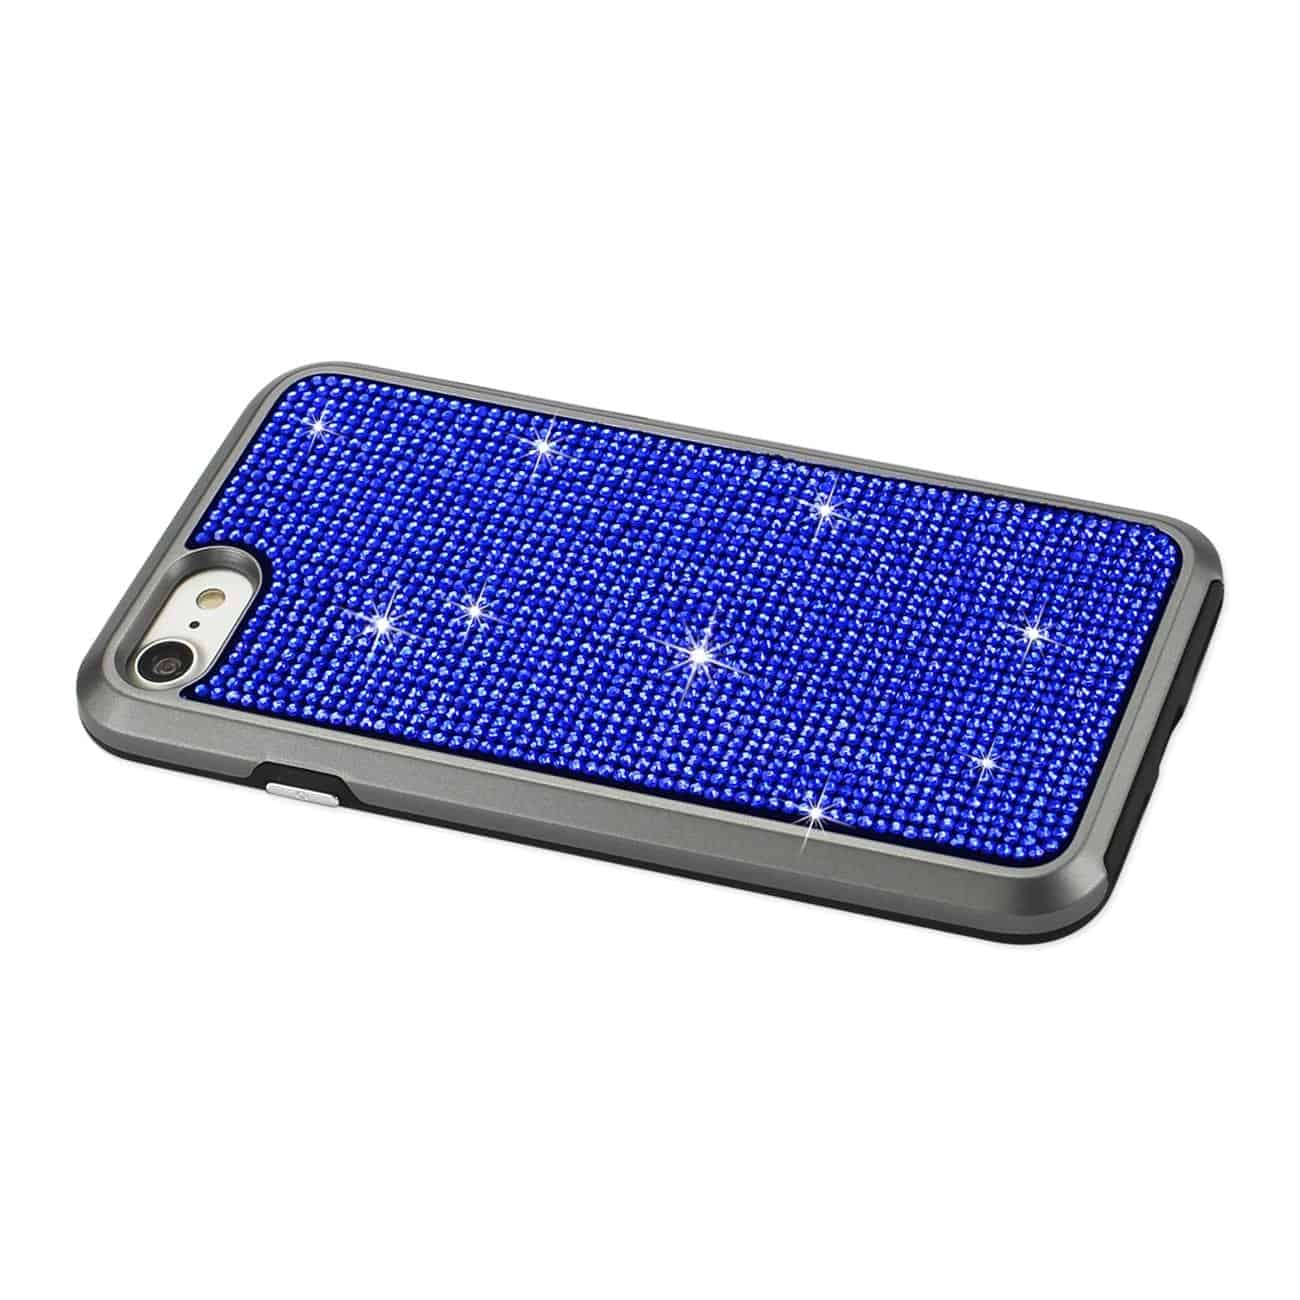 IPHONE 7 DIMOND TPU PROTECTOR COVER IN NAVY